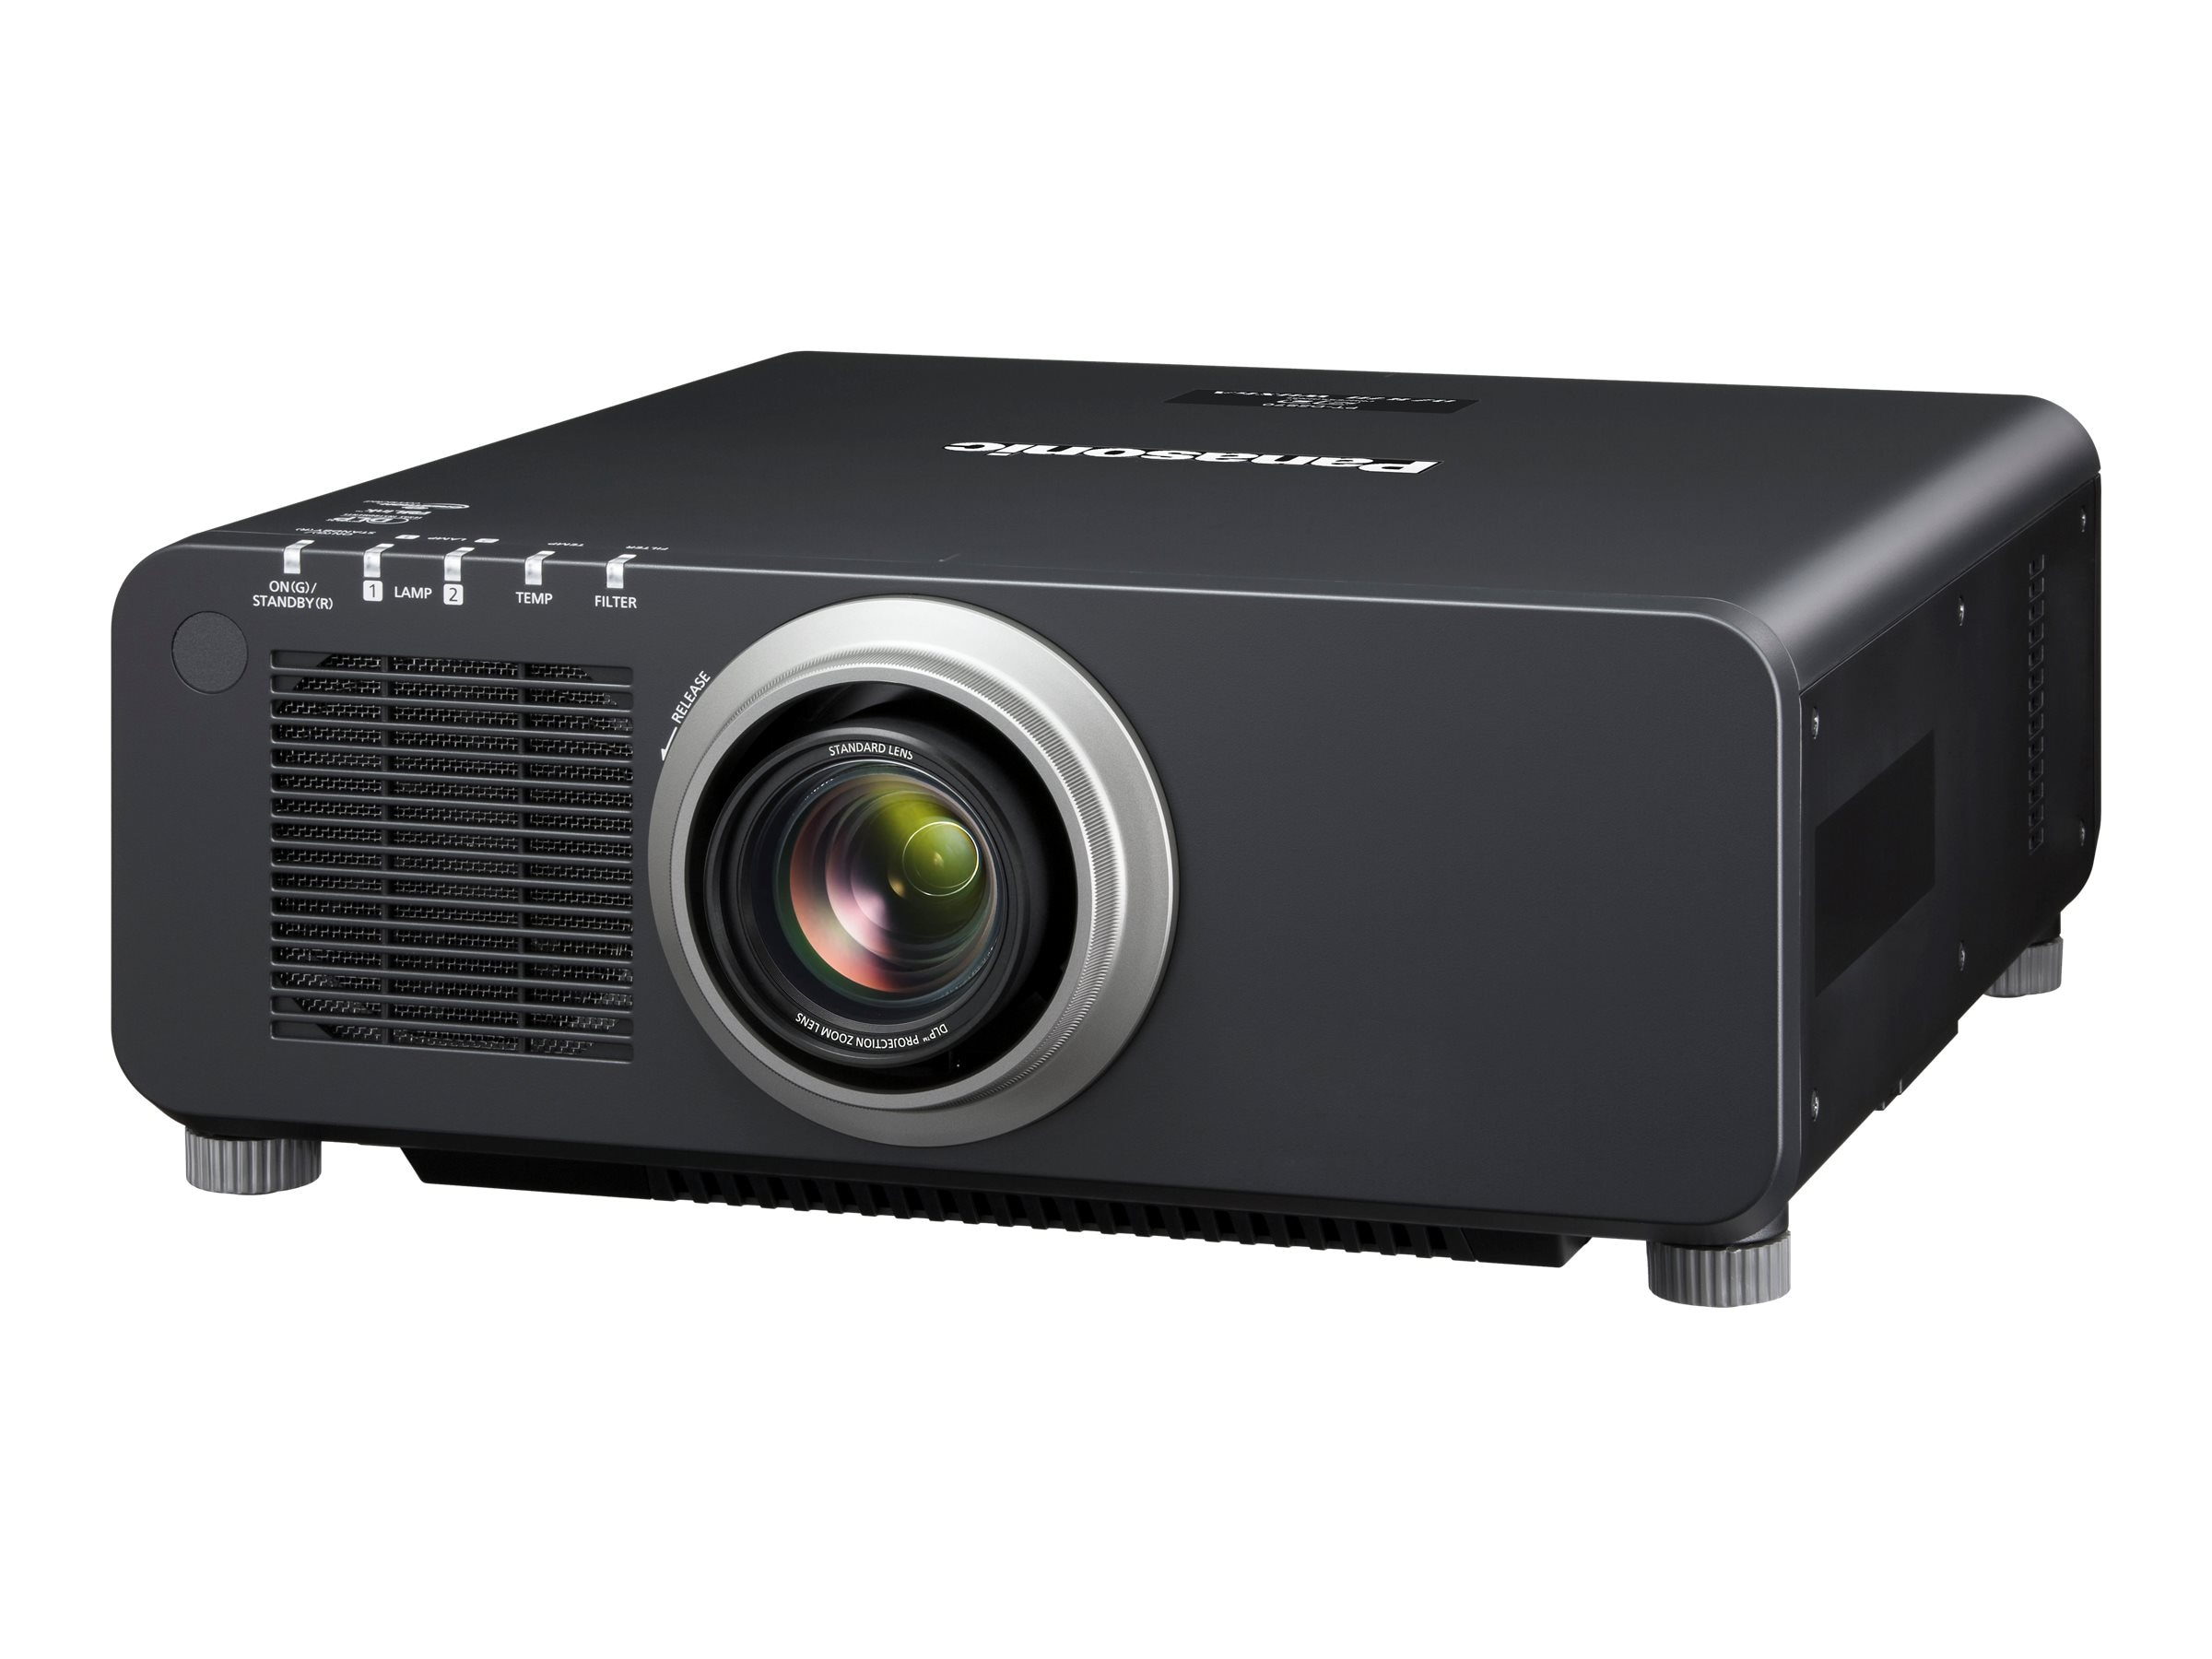 Panasonic PT-DZ870UK WUXGA DLP Projector, 8500 Lumens, PT-DZ870UK, 15950341, Projectors